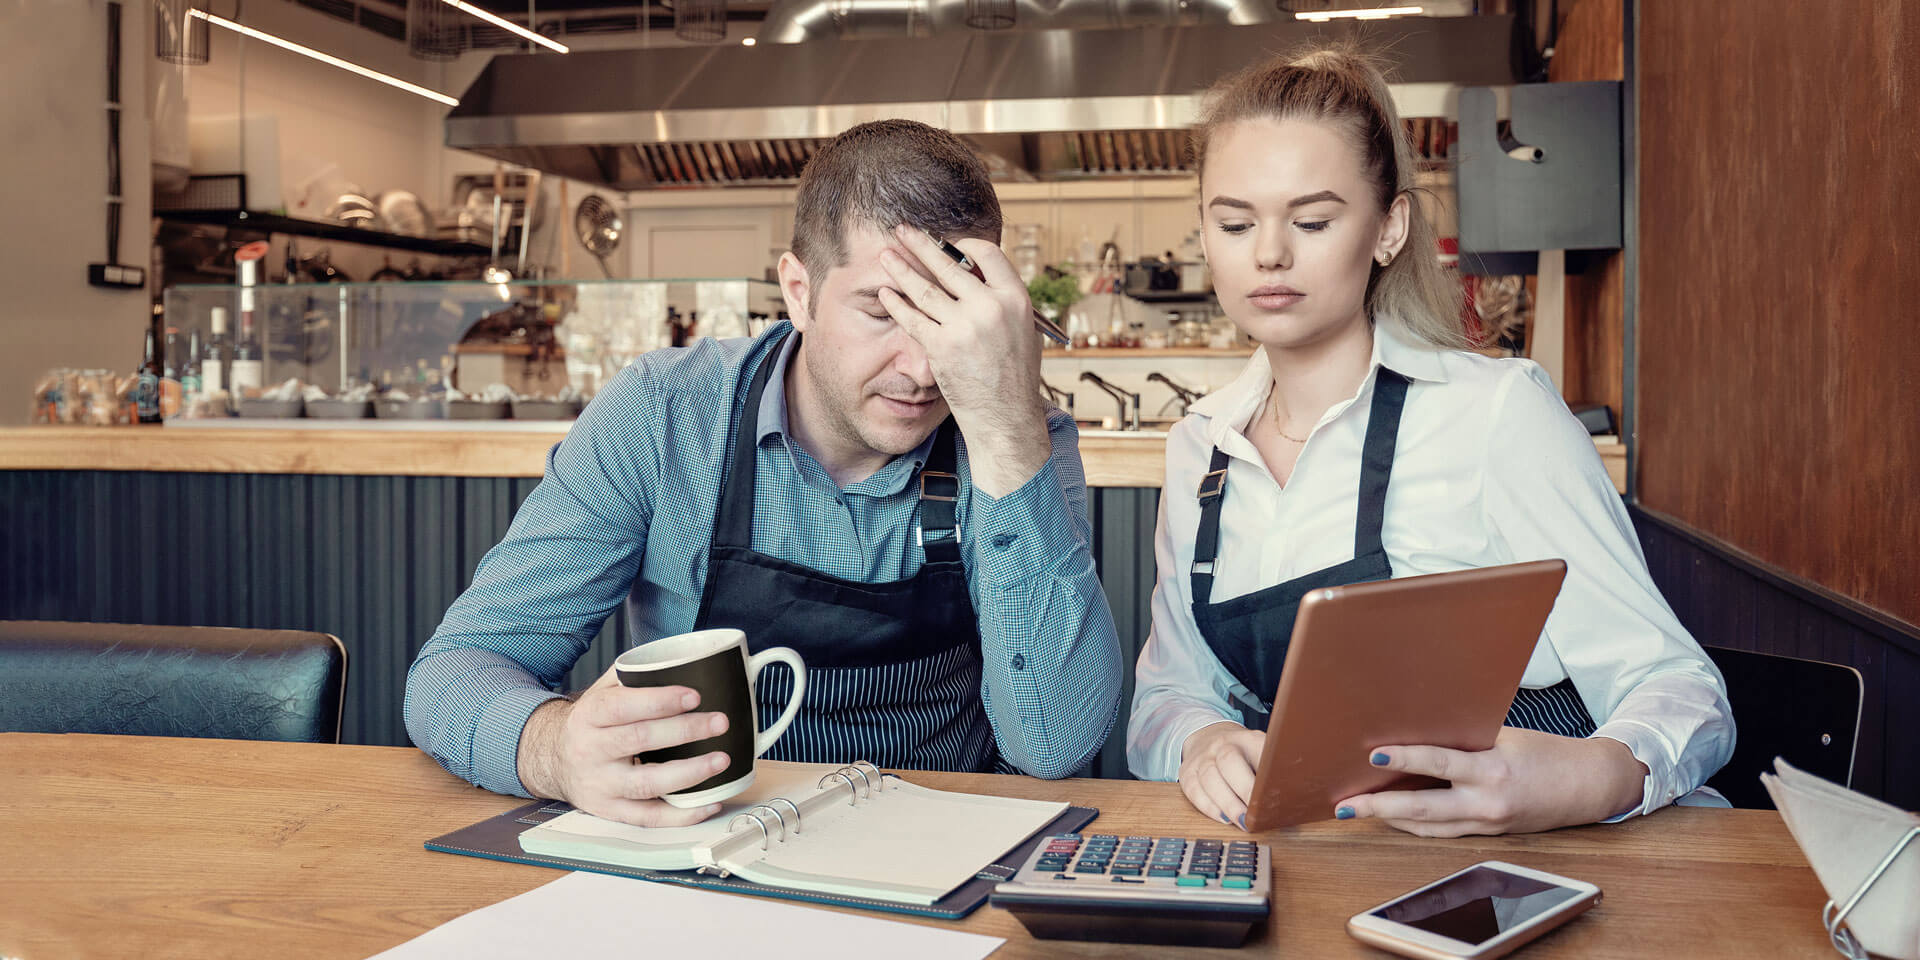 8 tips to build a successful restaurant experience in times of crisis and beyond